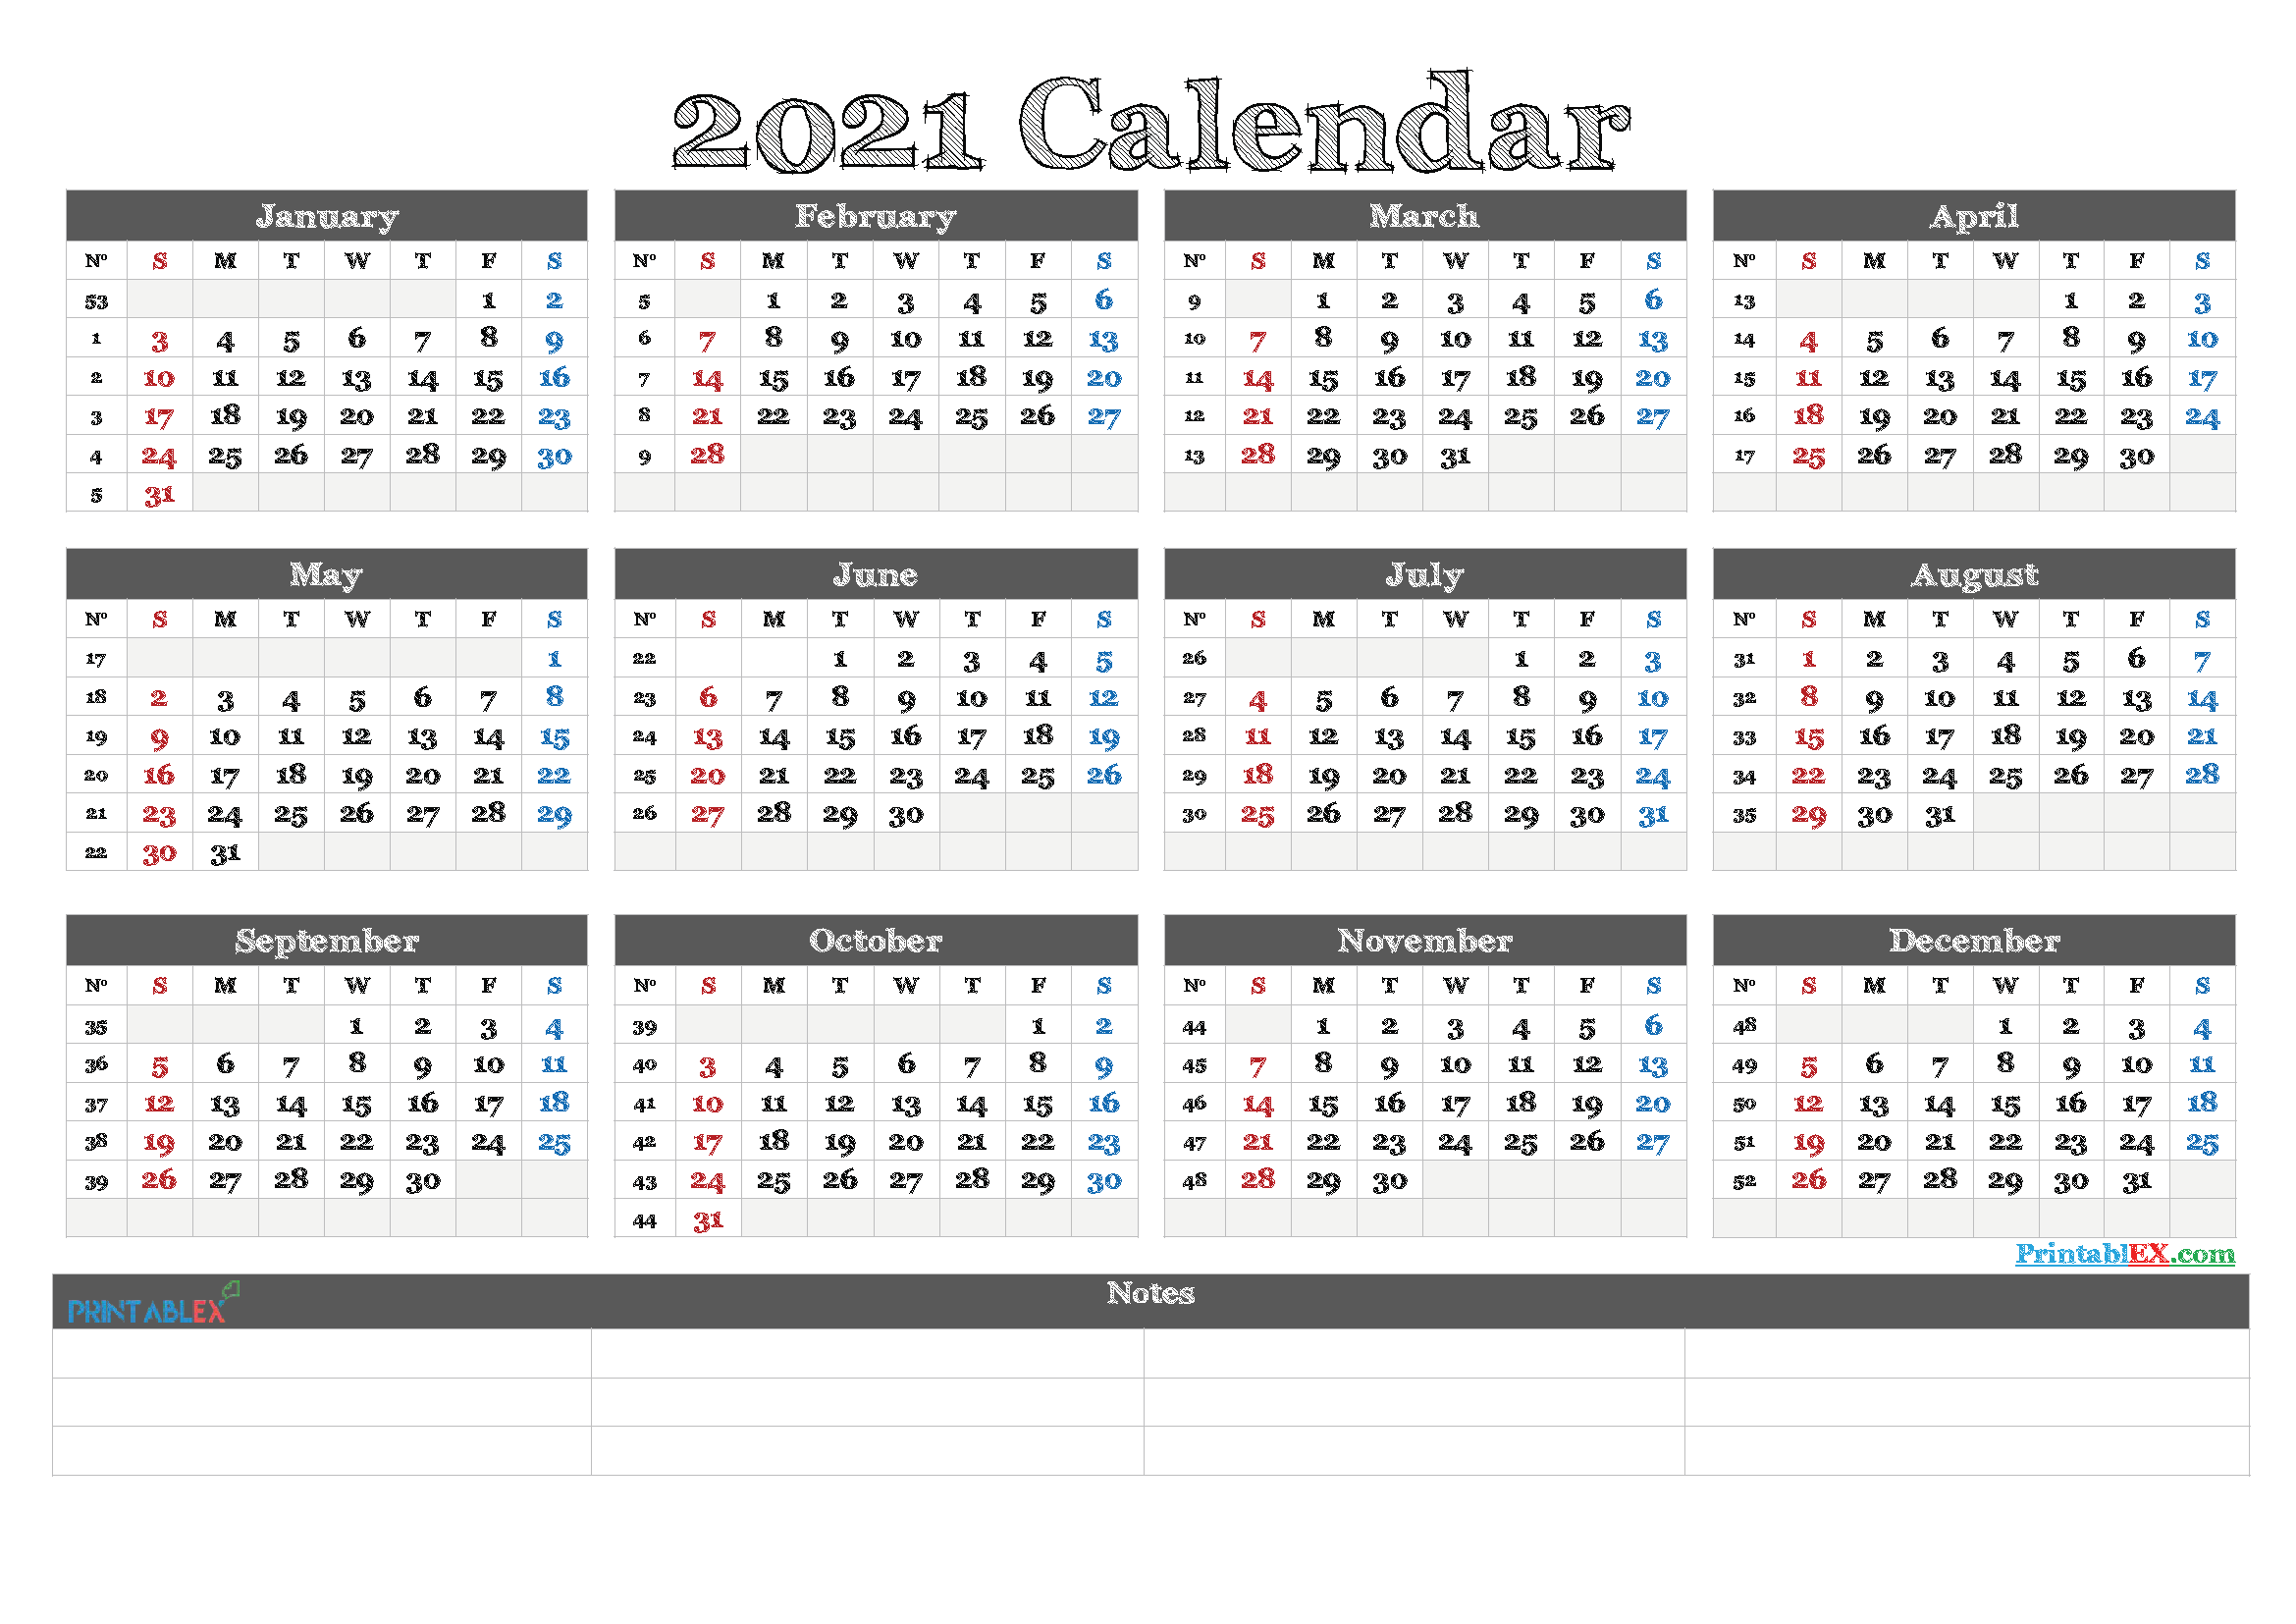 2021 Yearly Calendar Template Word - 21ytw80 - Free ...